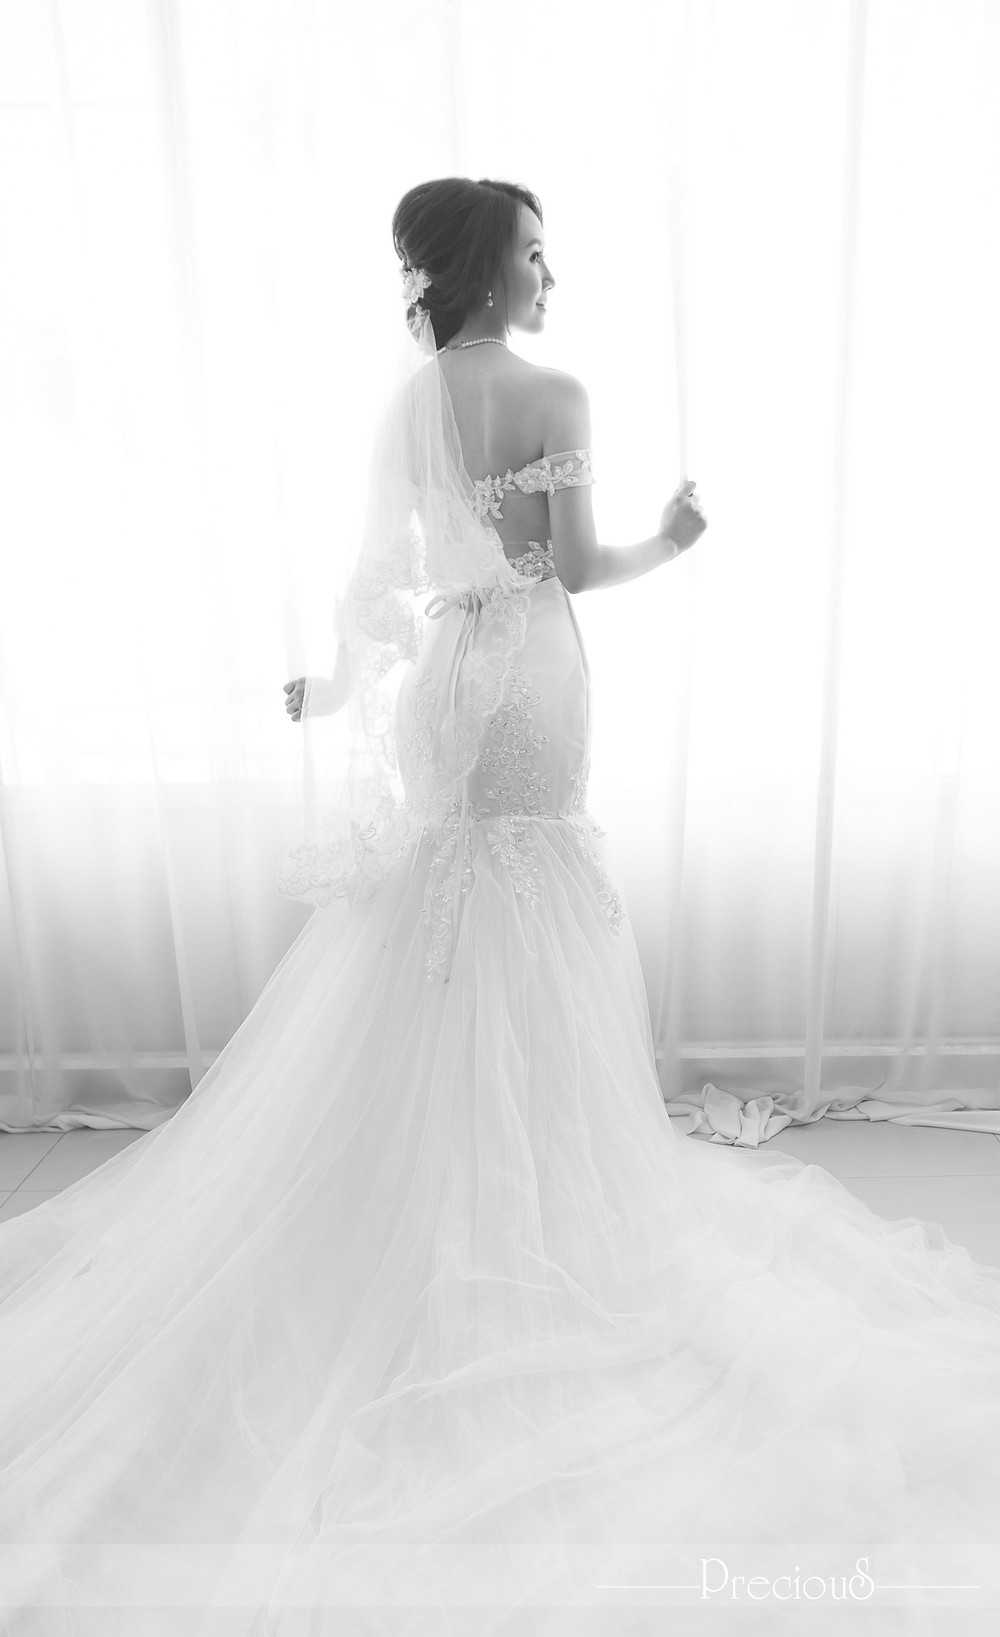 PRECIOUS WEDDING | Off-the-shoulder sheer lace long trumpet dress